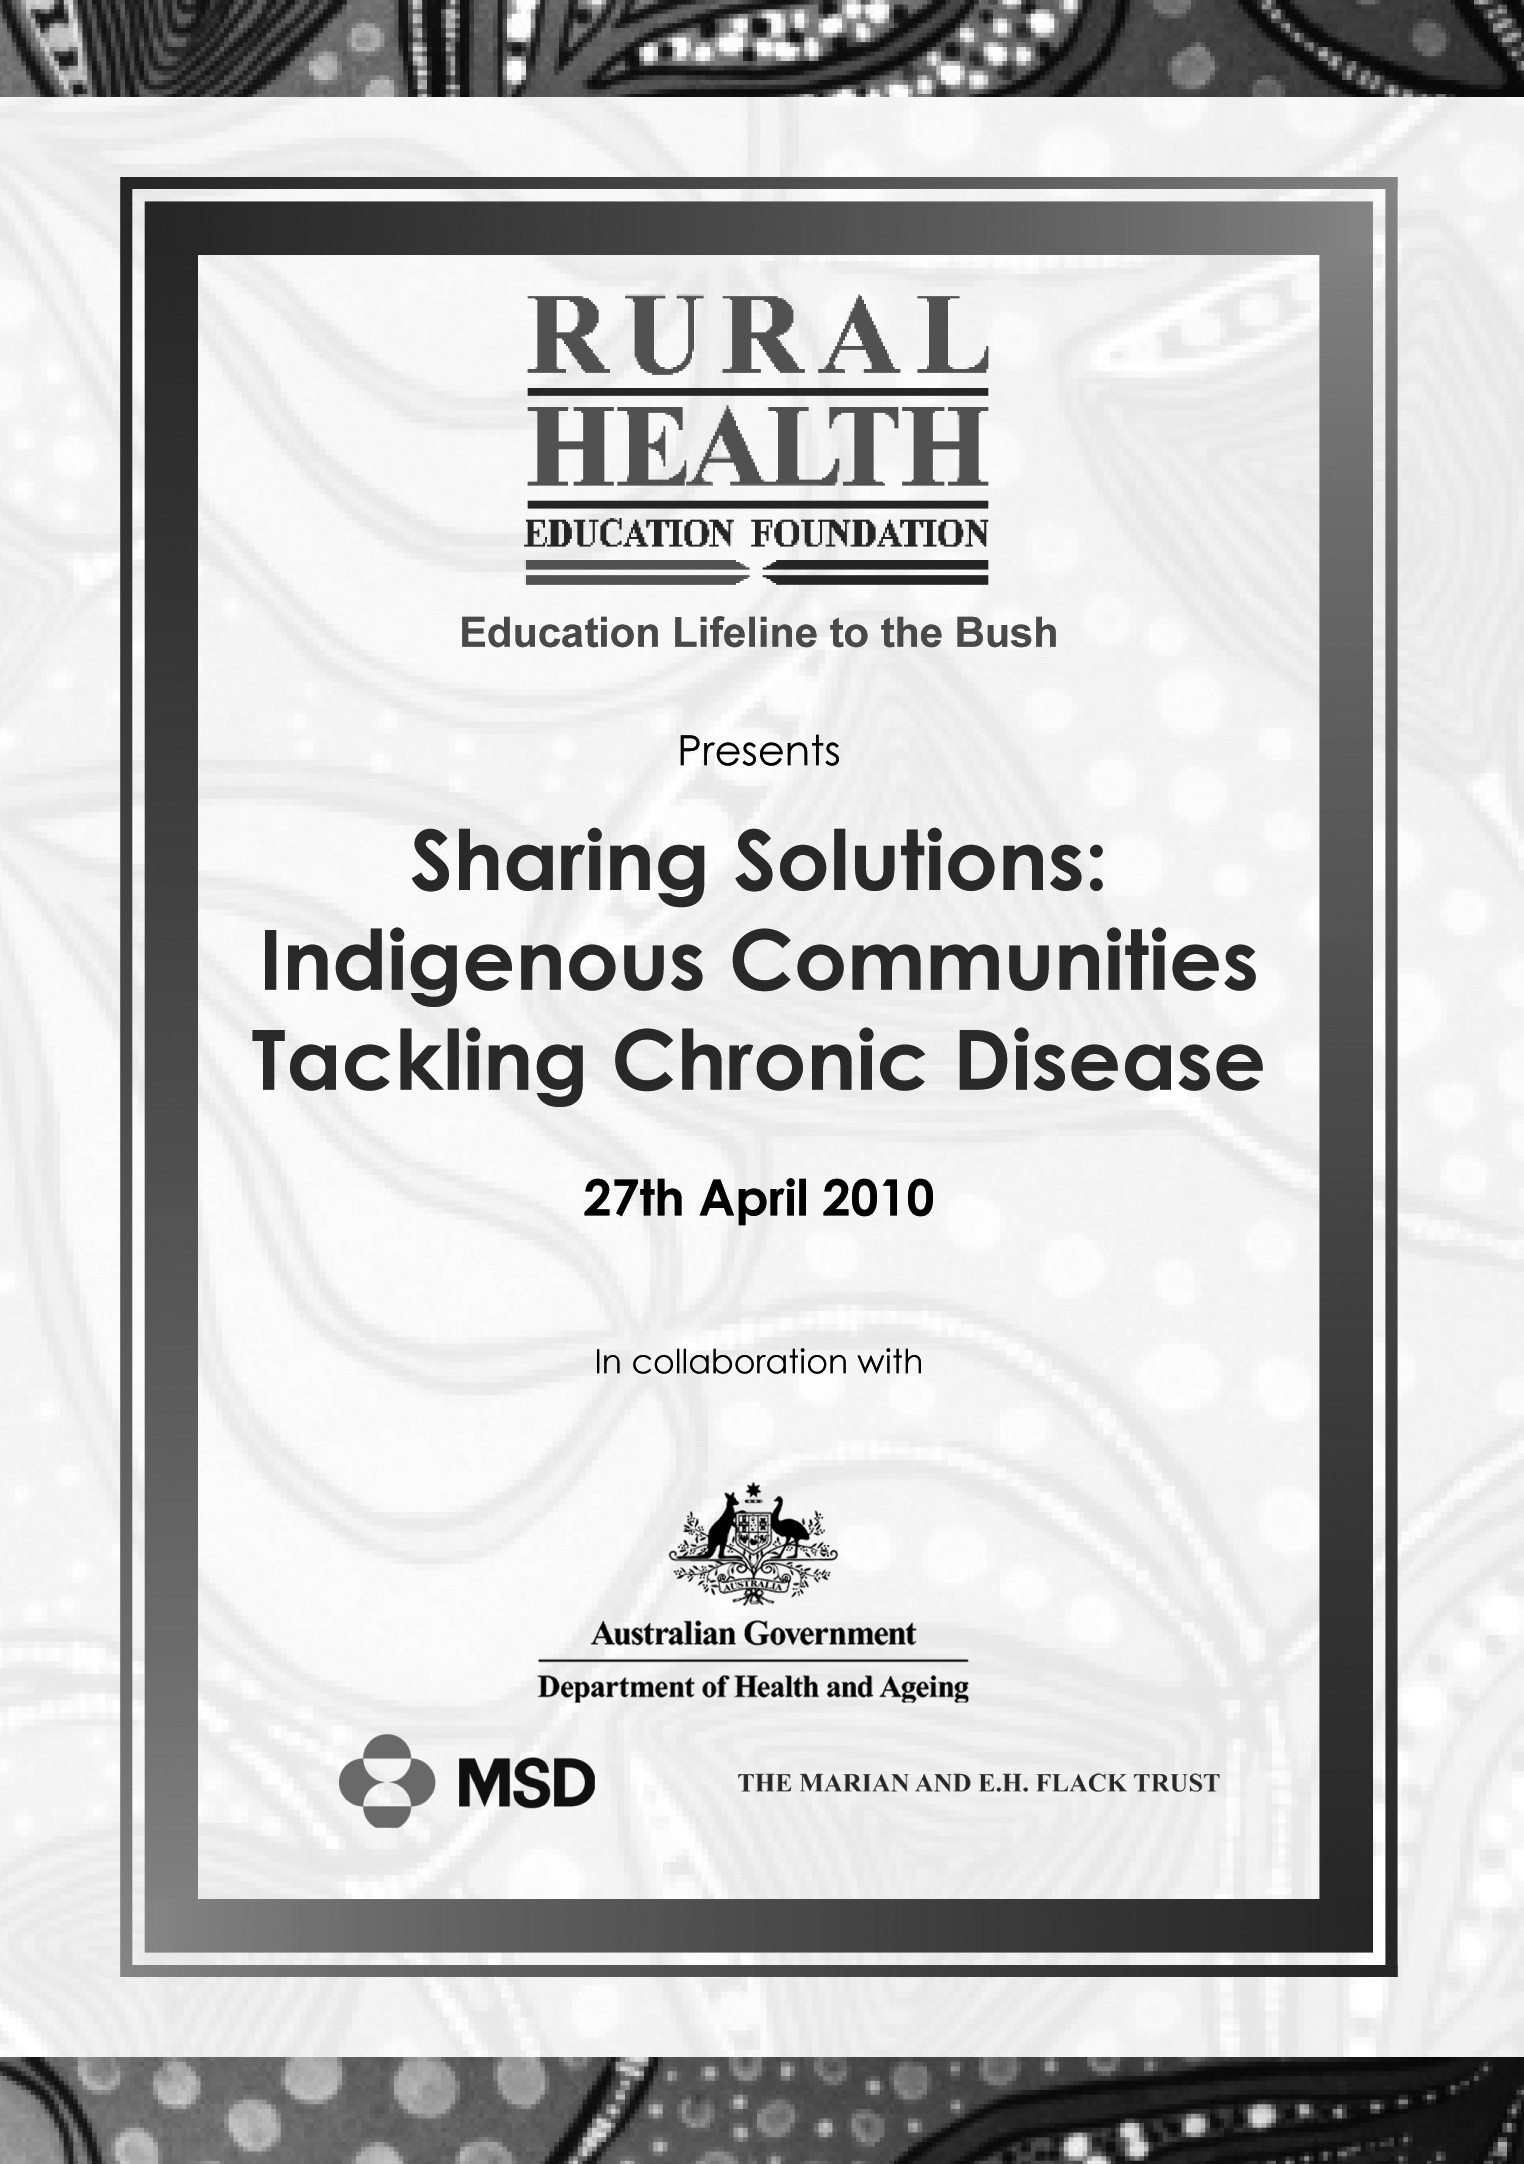 Sharing solutions: Indigenous communities tackling chronic disease